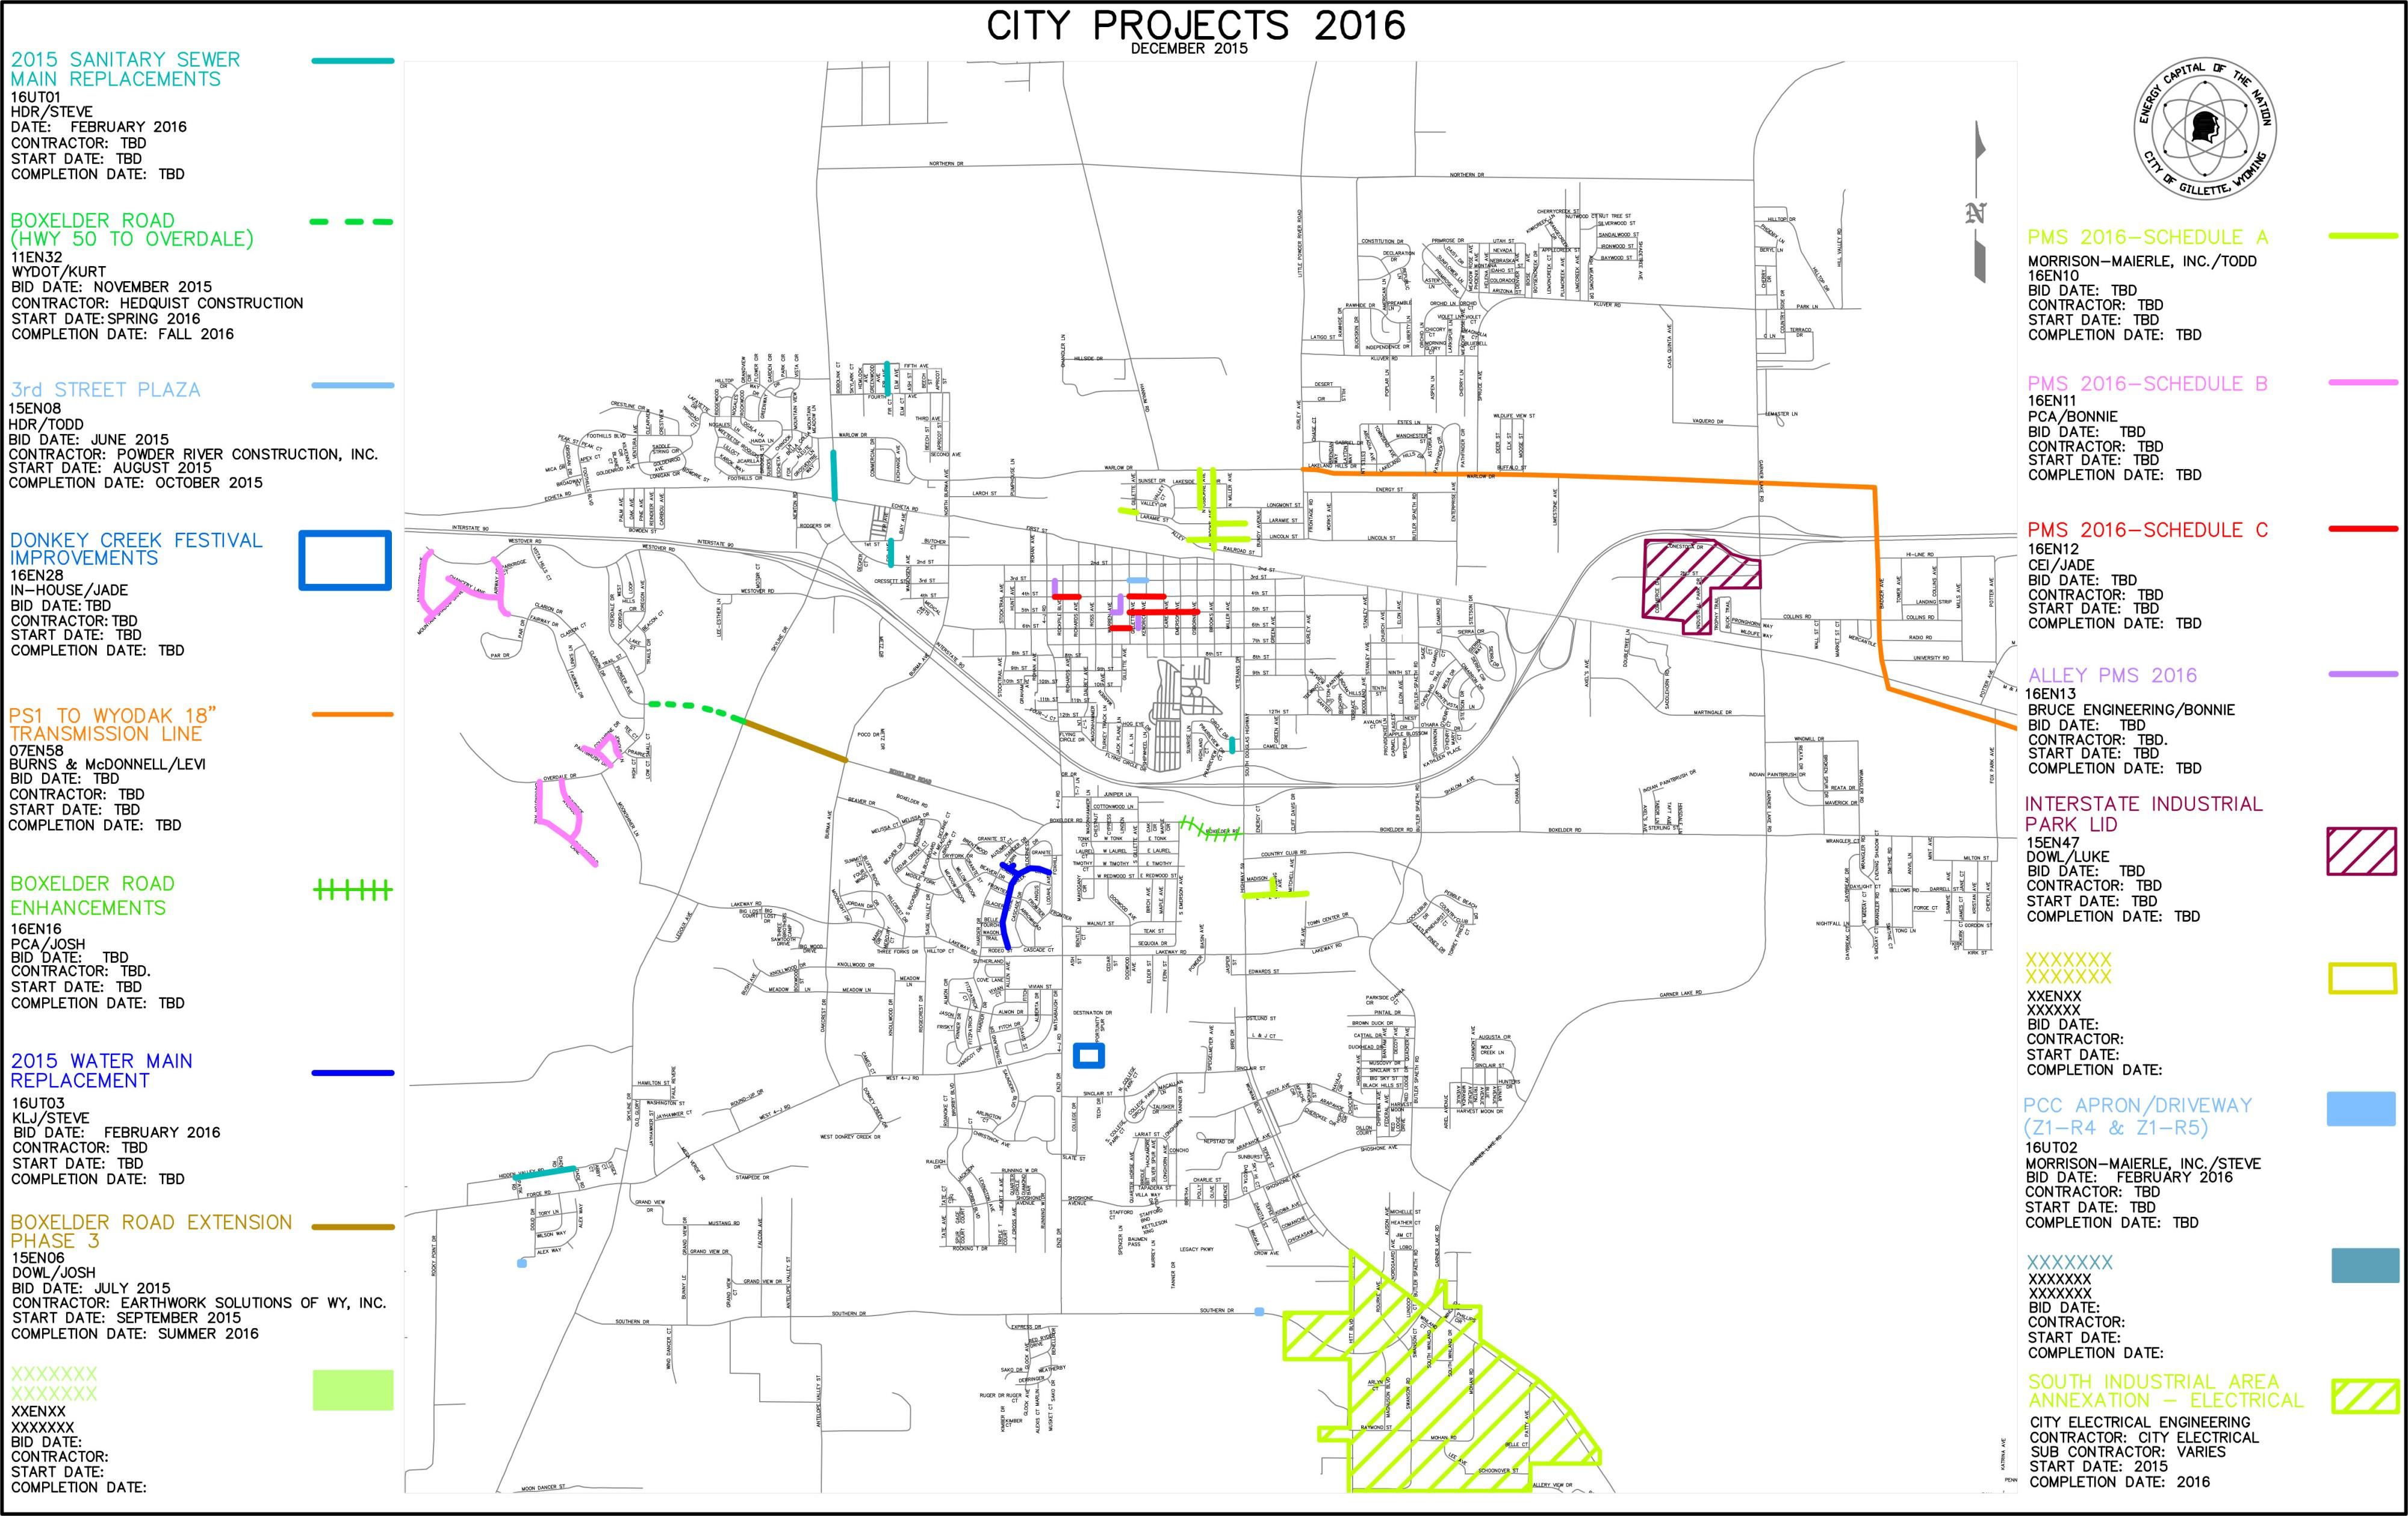 CITY PROJECT MAP 2016